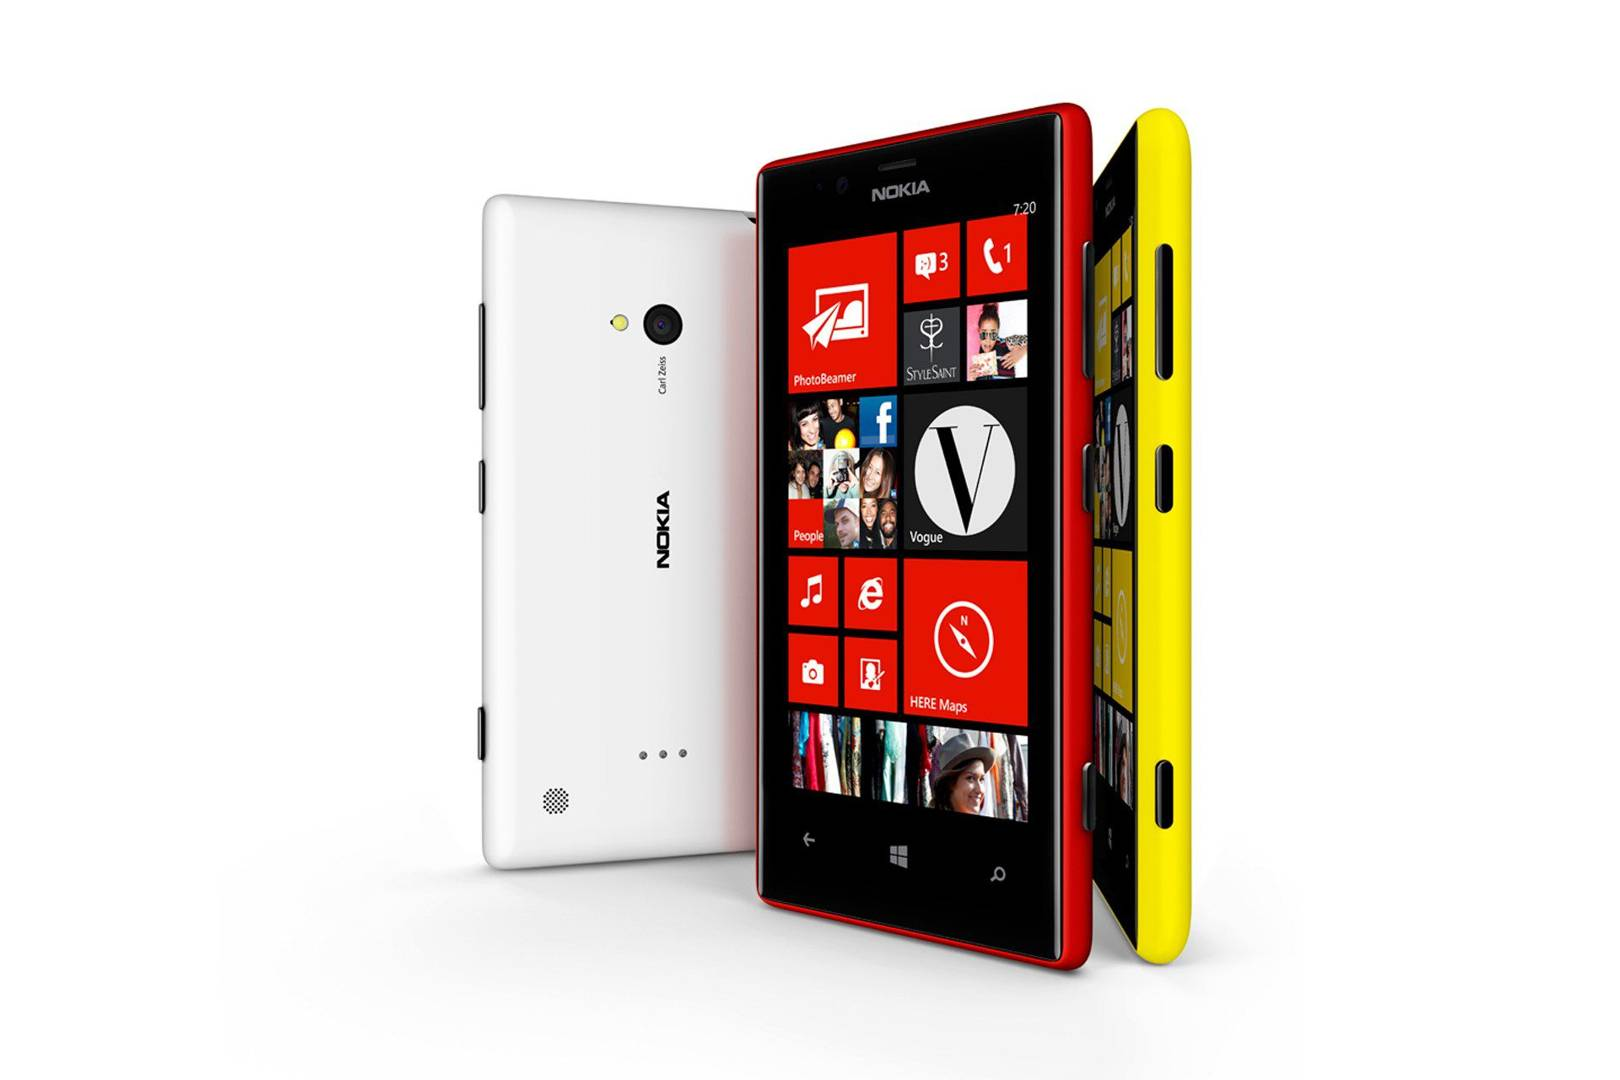 Nokia Lumia 720 Review Specs Performance Best Price And Camera 620 Magenta Quality Wired Uk